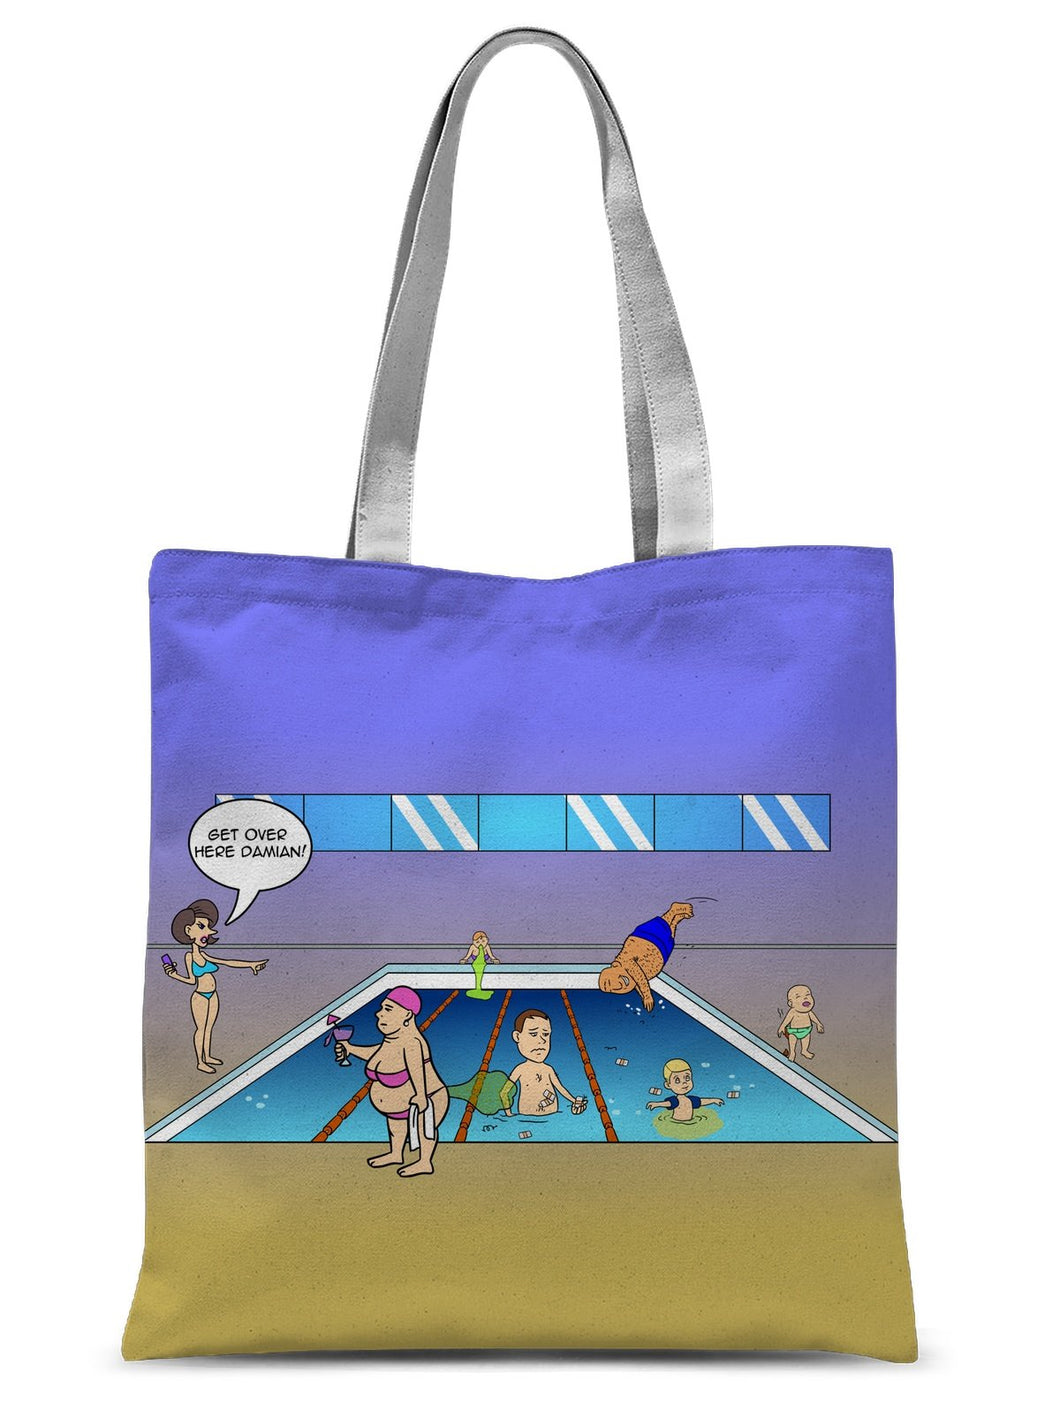 Getting Plastered - Refresh Sublimation Tote Bag 15